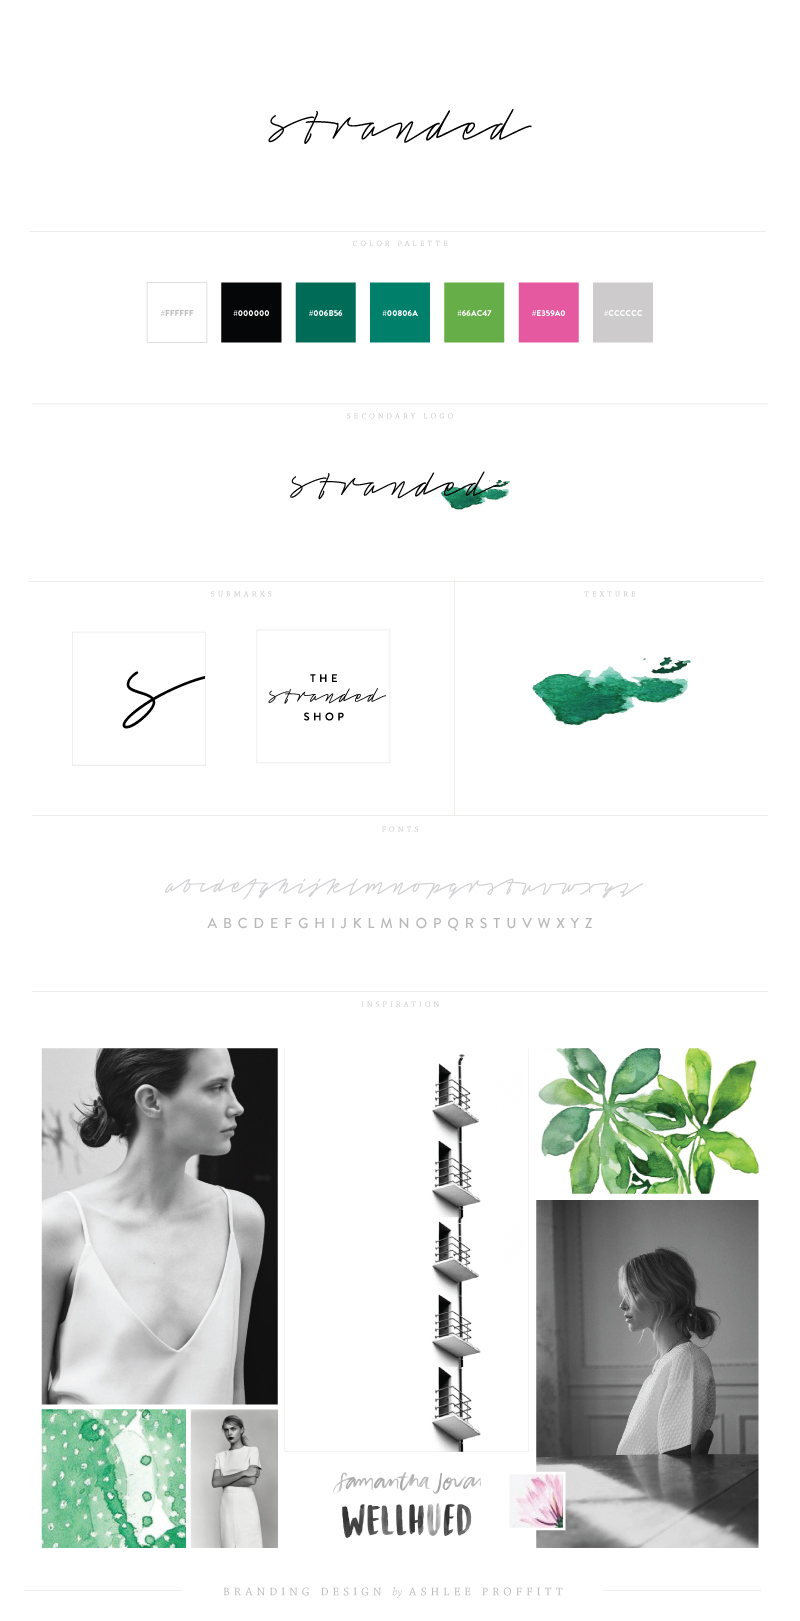 Brand Elements | The Stranded Shop | branding by Ashlee Proffitt